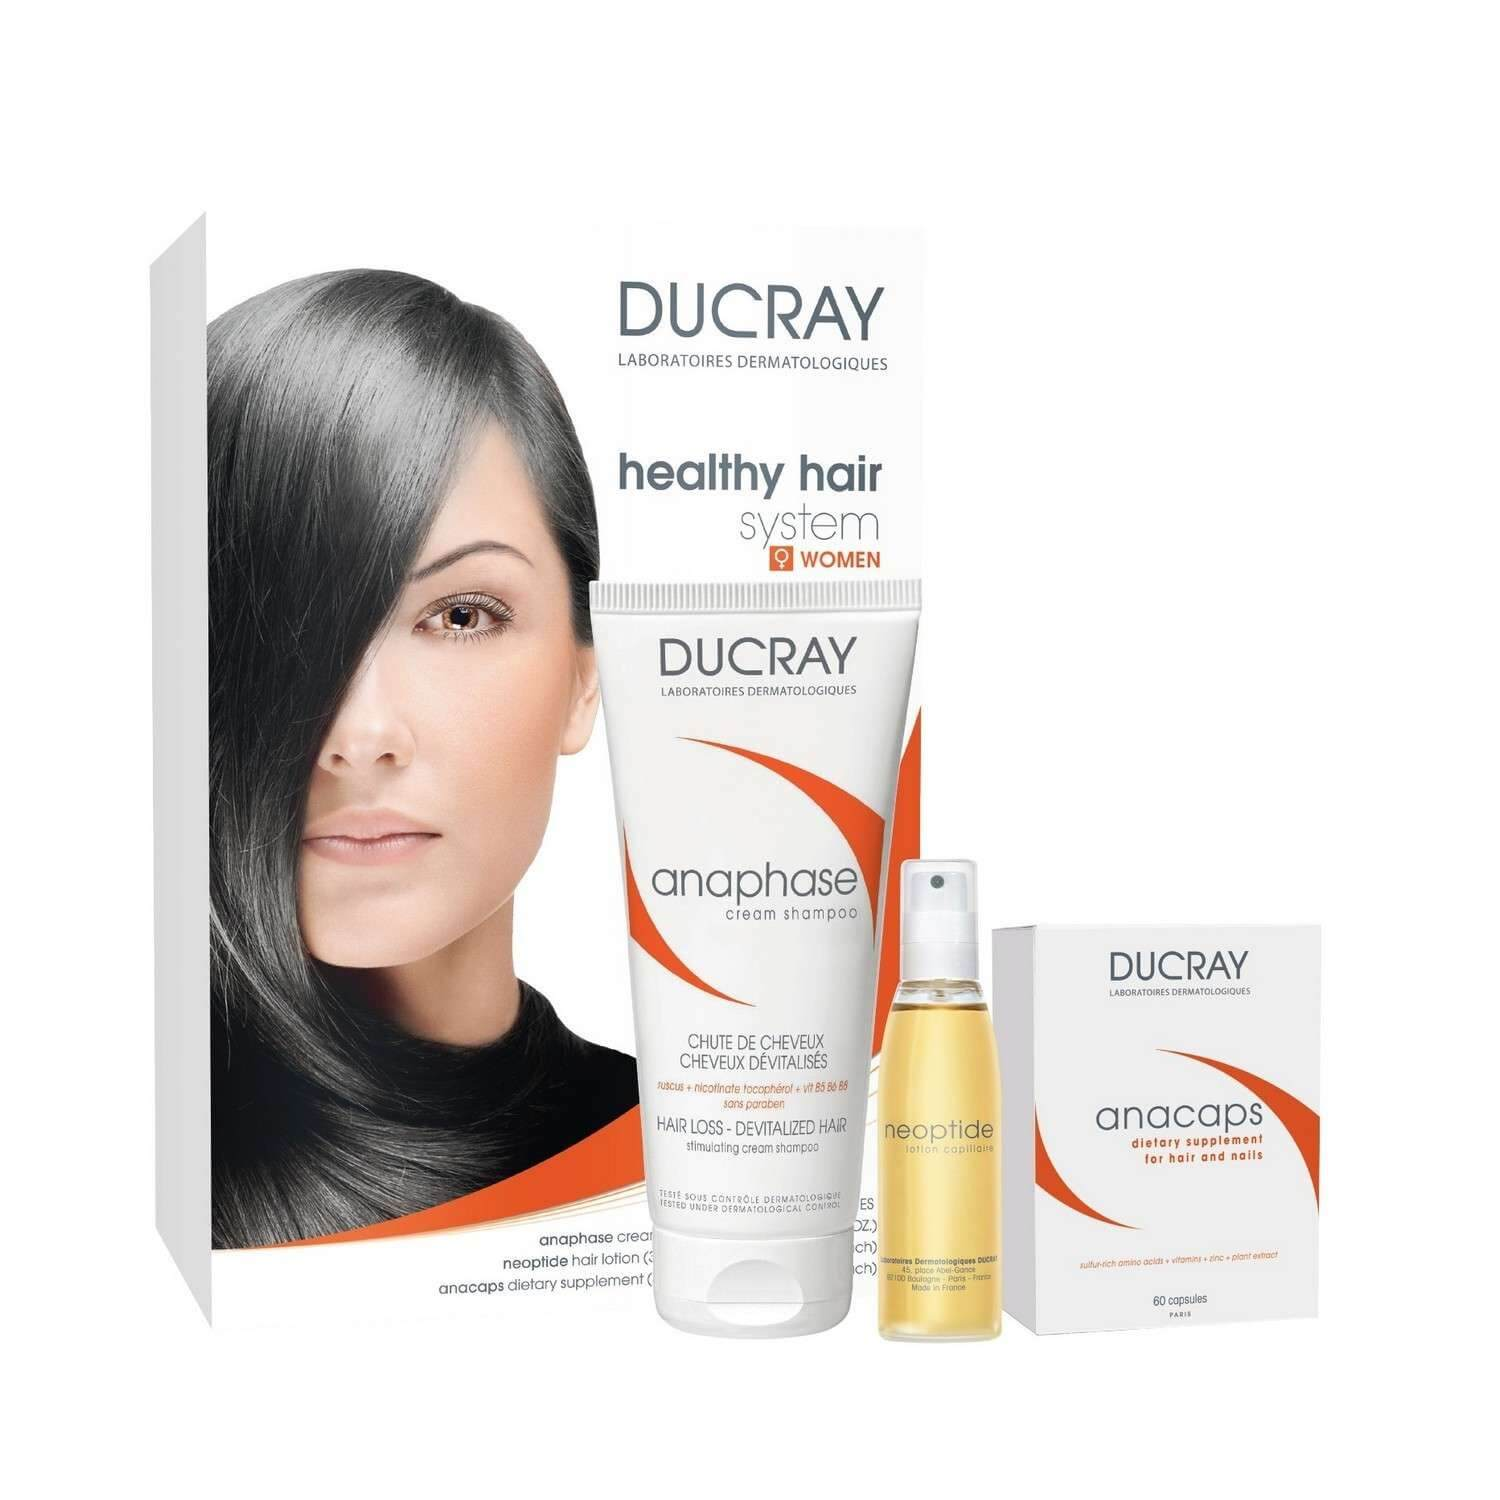 Ducray DUCRAY healthy hair system - WOMEN (set)